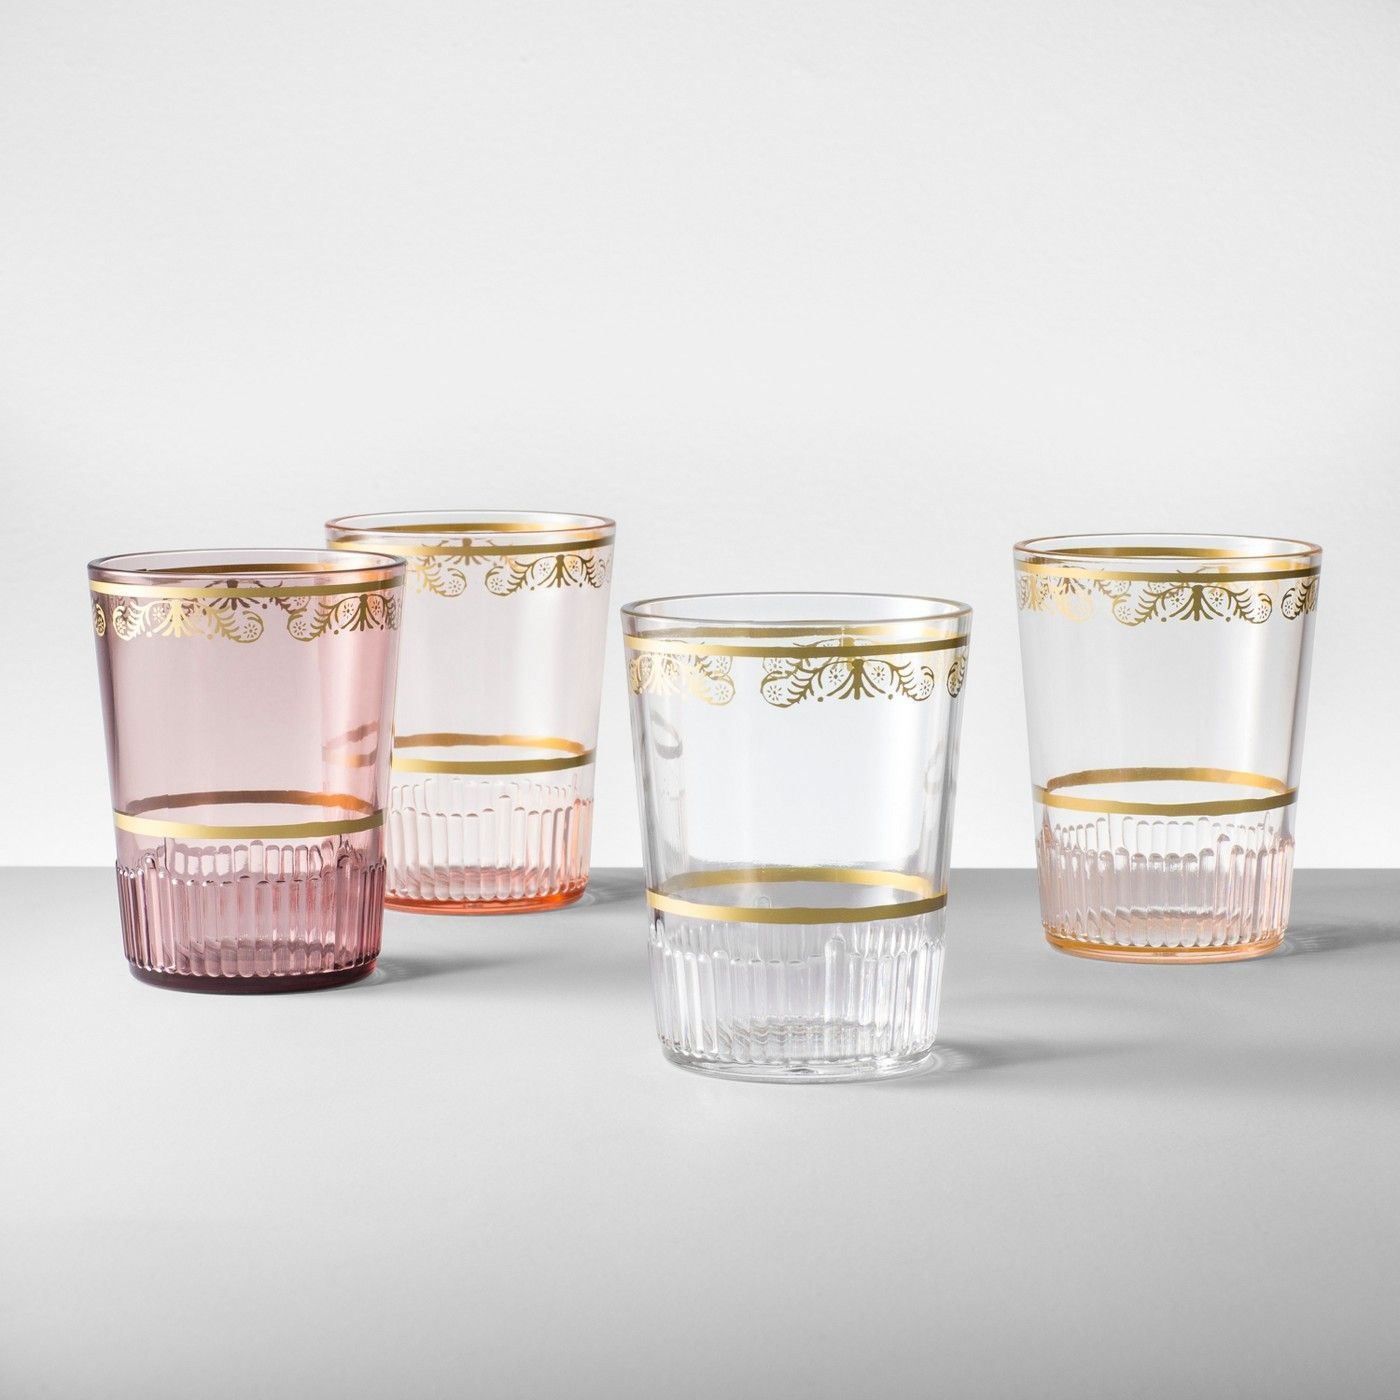 Baby Birthdays and the New Opalhouse Collection — the artful ambler -  Opalhouse Plastic Tumblers Pink – Target Home. Home decor, interior design, kitchen, dining room, - #ambler #artful #Baby #Birthdays #Collection #farmhouseTraditionalDecor #Opalhouse #TraditionalDecorbedroom #transitionalTraditionalDecor #updatedTraditionalDecor #vintageTraditionalDecor